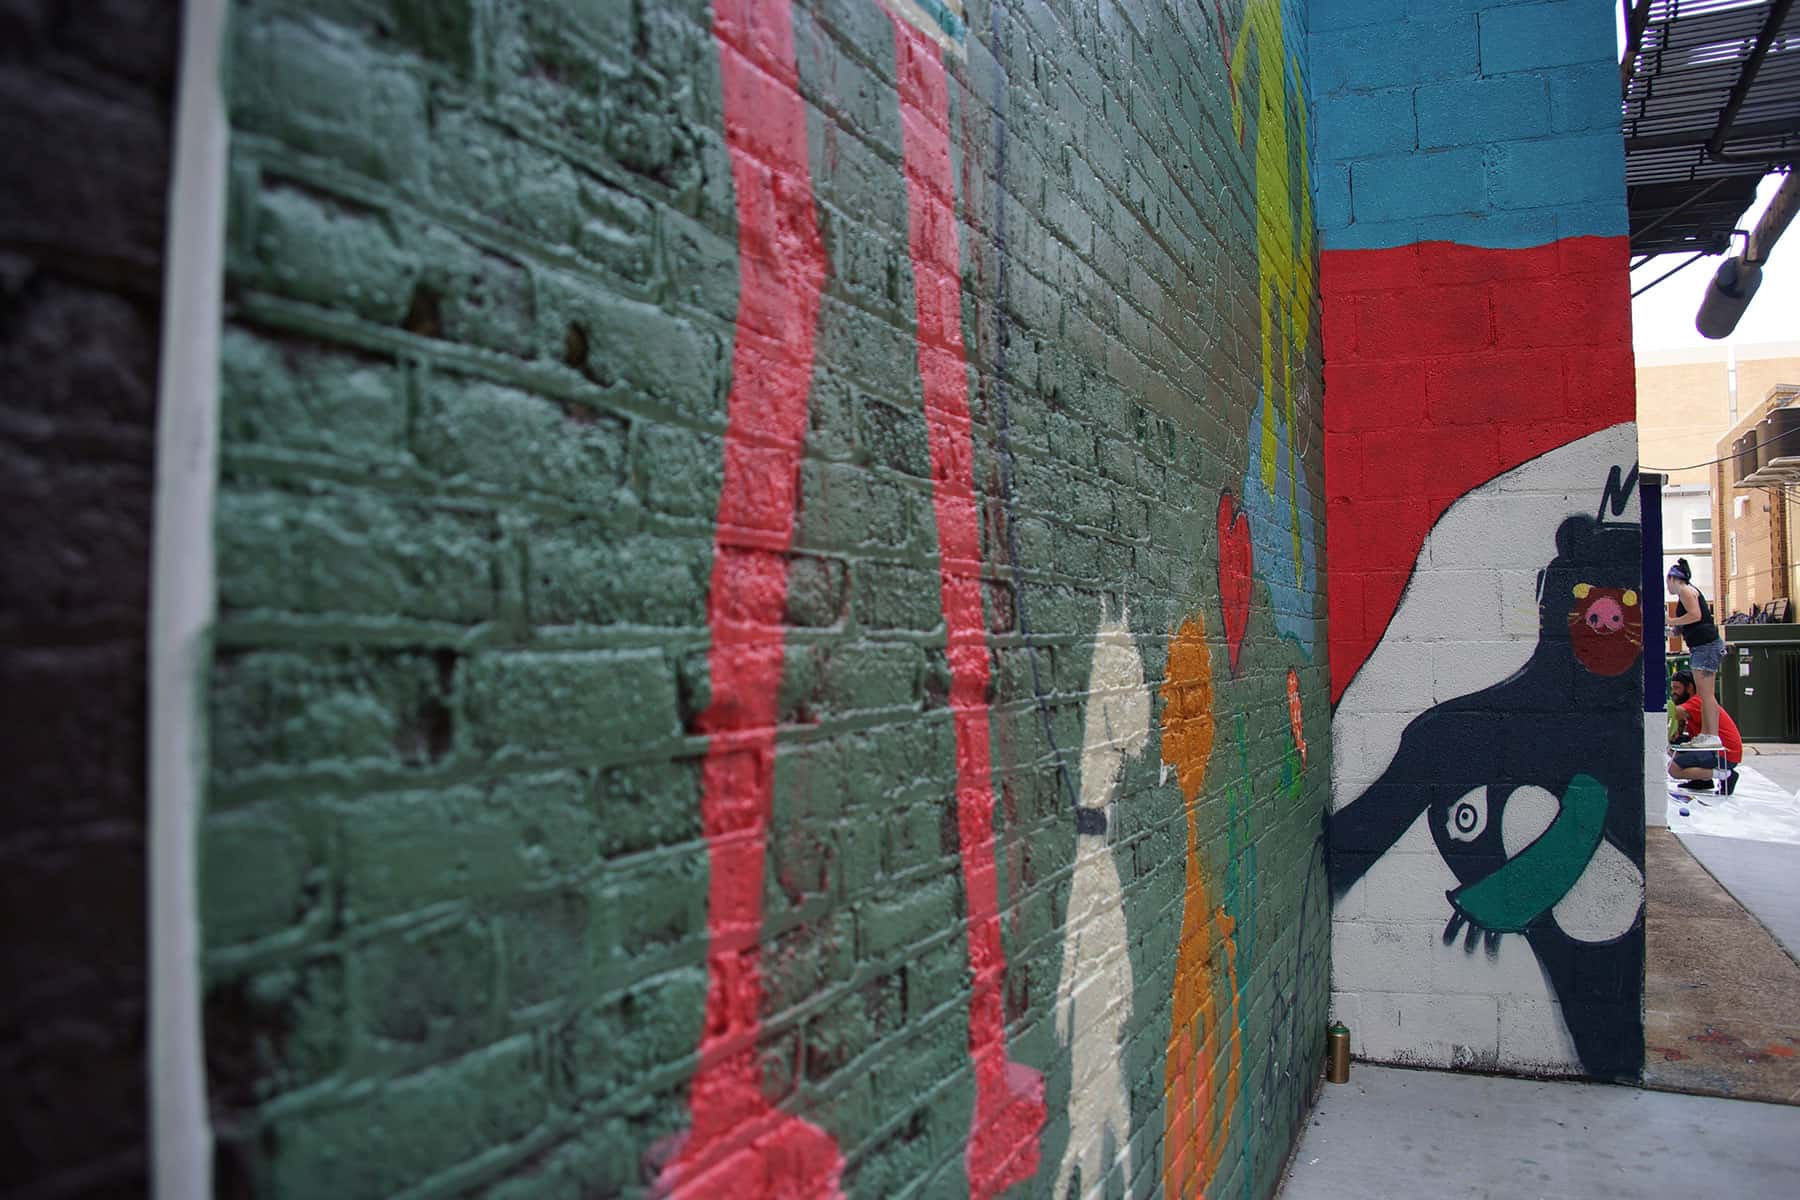 090616_blackcatalley-day1_443